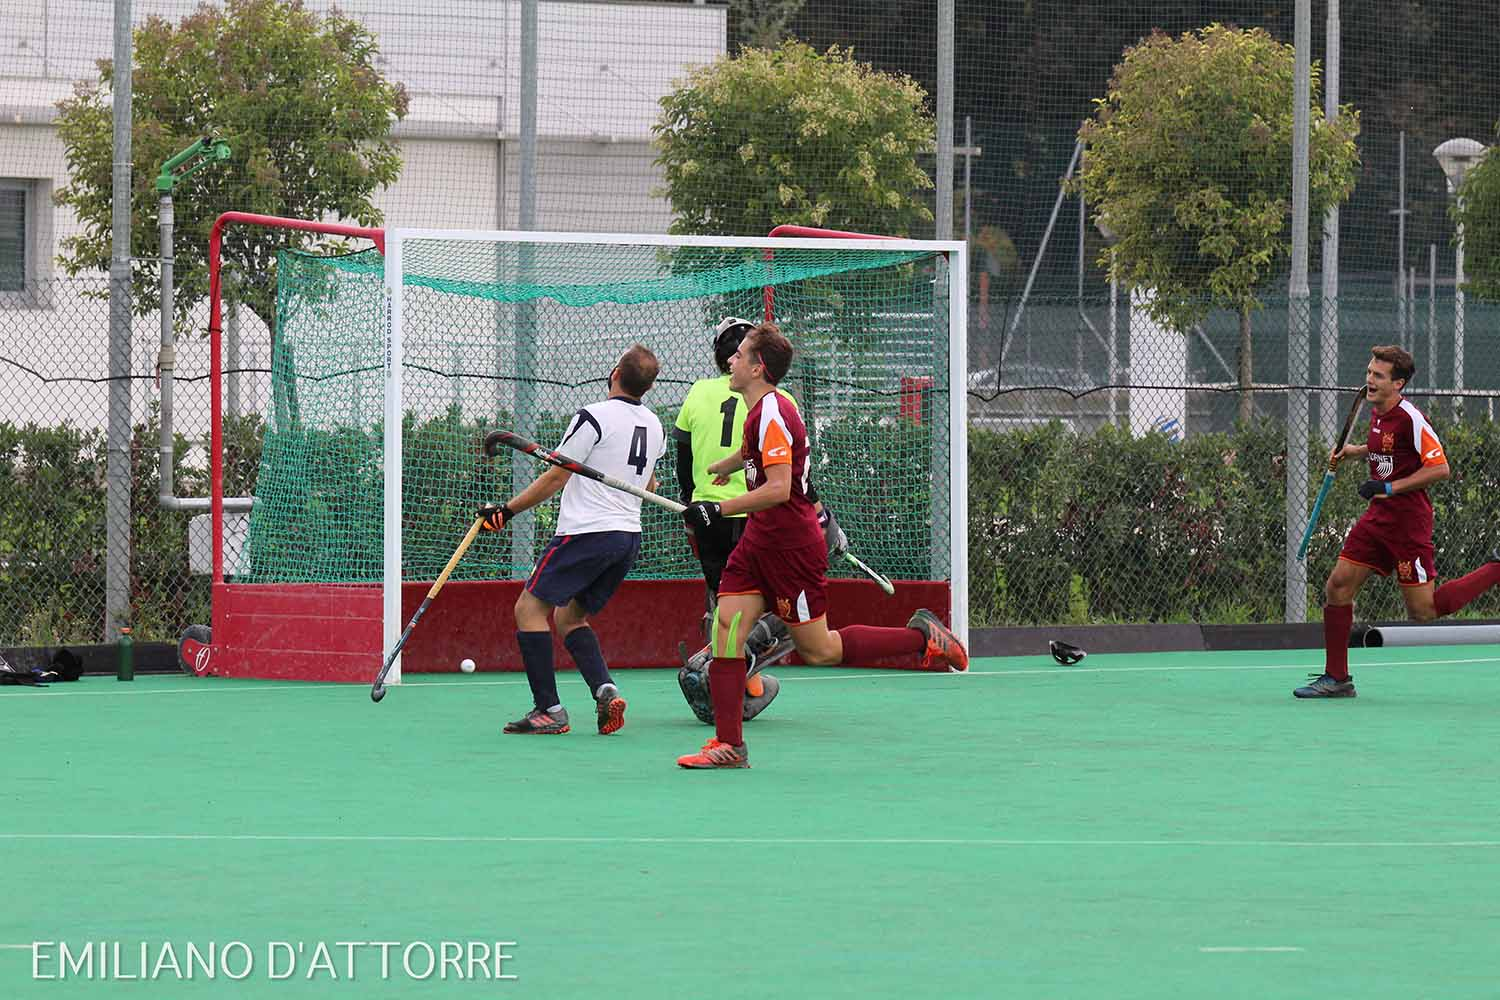 Low Hockey Club Roma Vs Hockey Team Bologna 6 1(1zs) (Serie A1) 3.11.2019